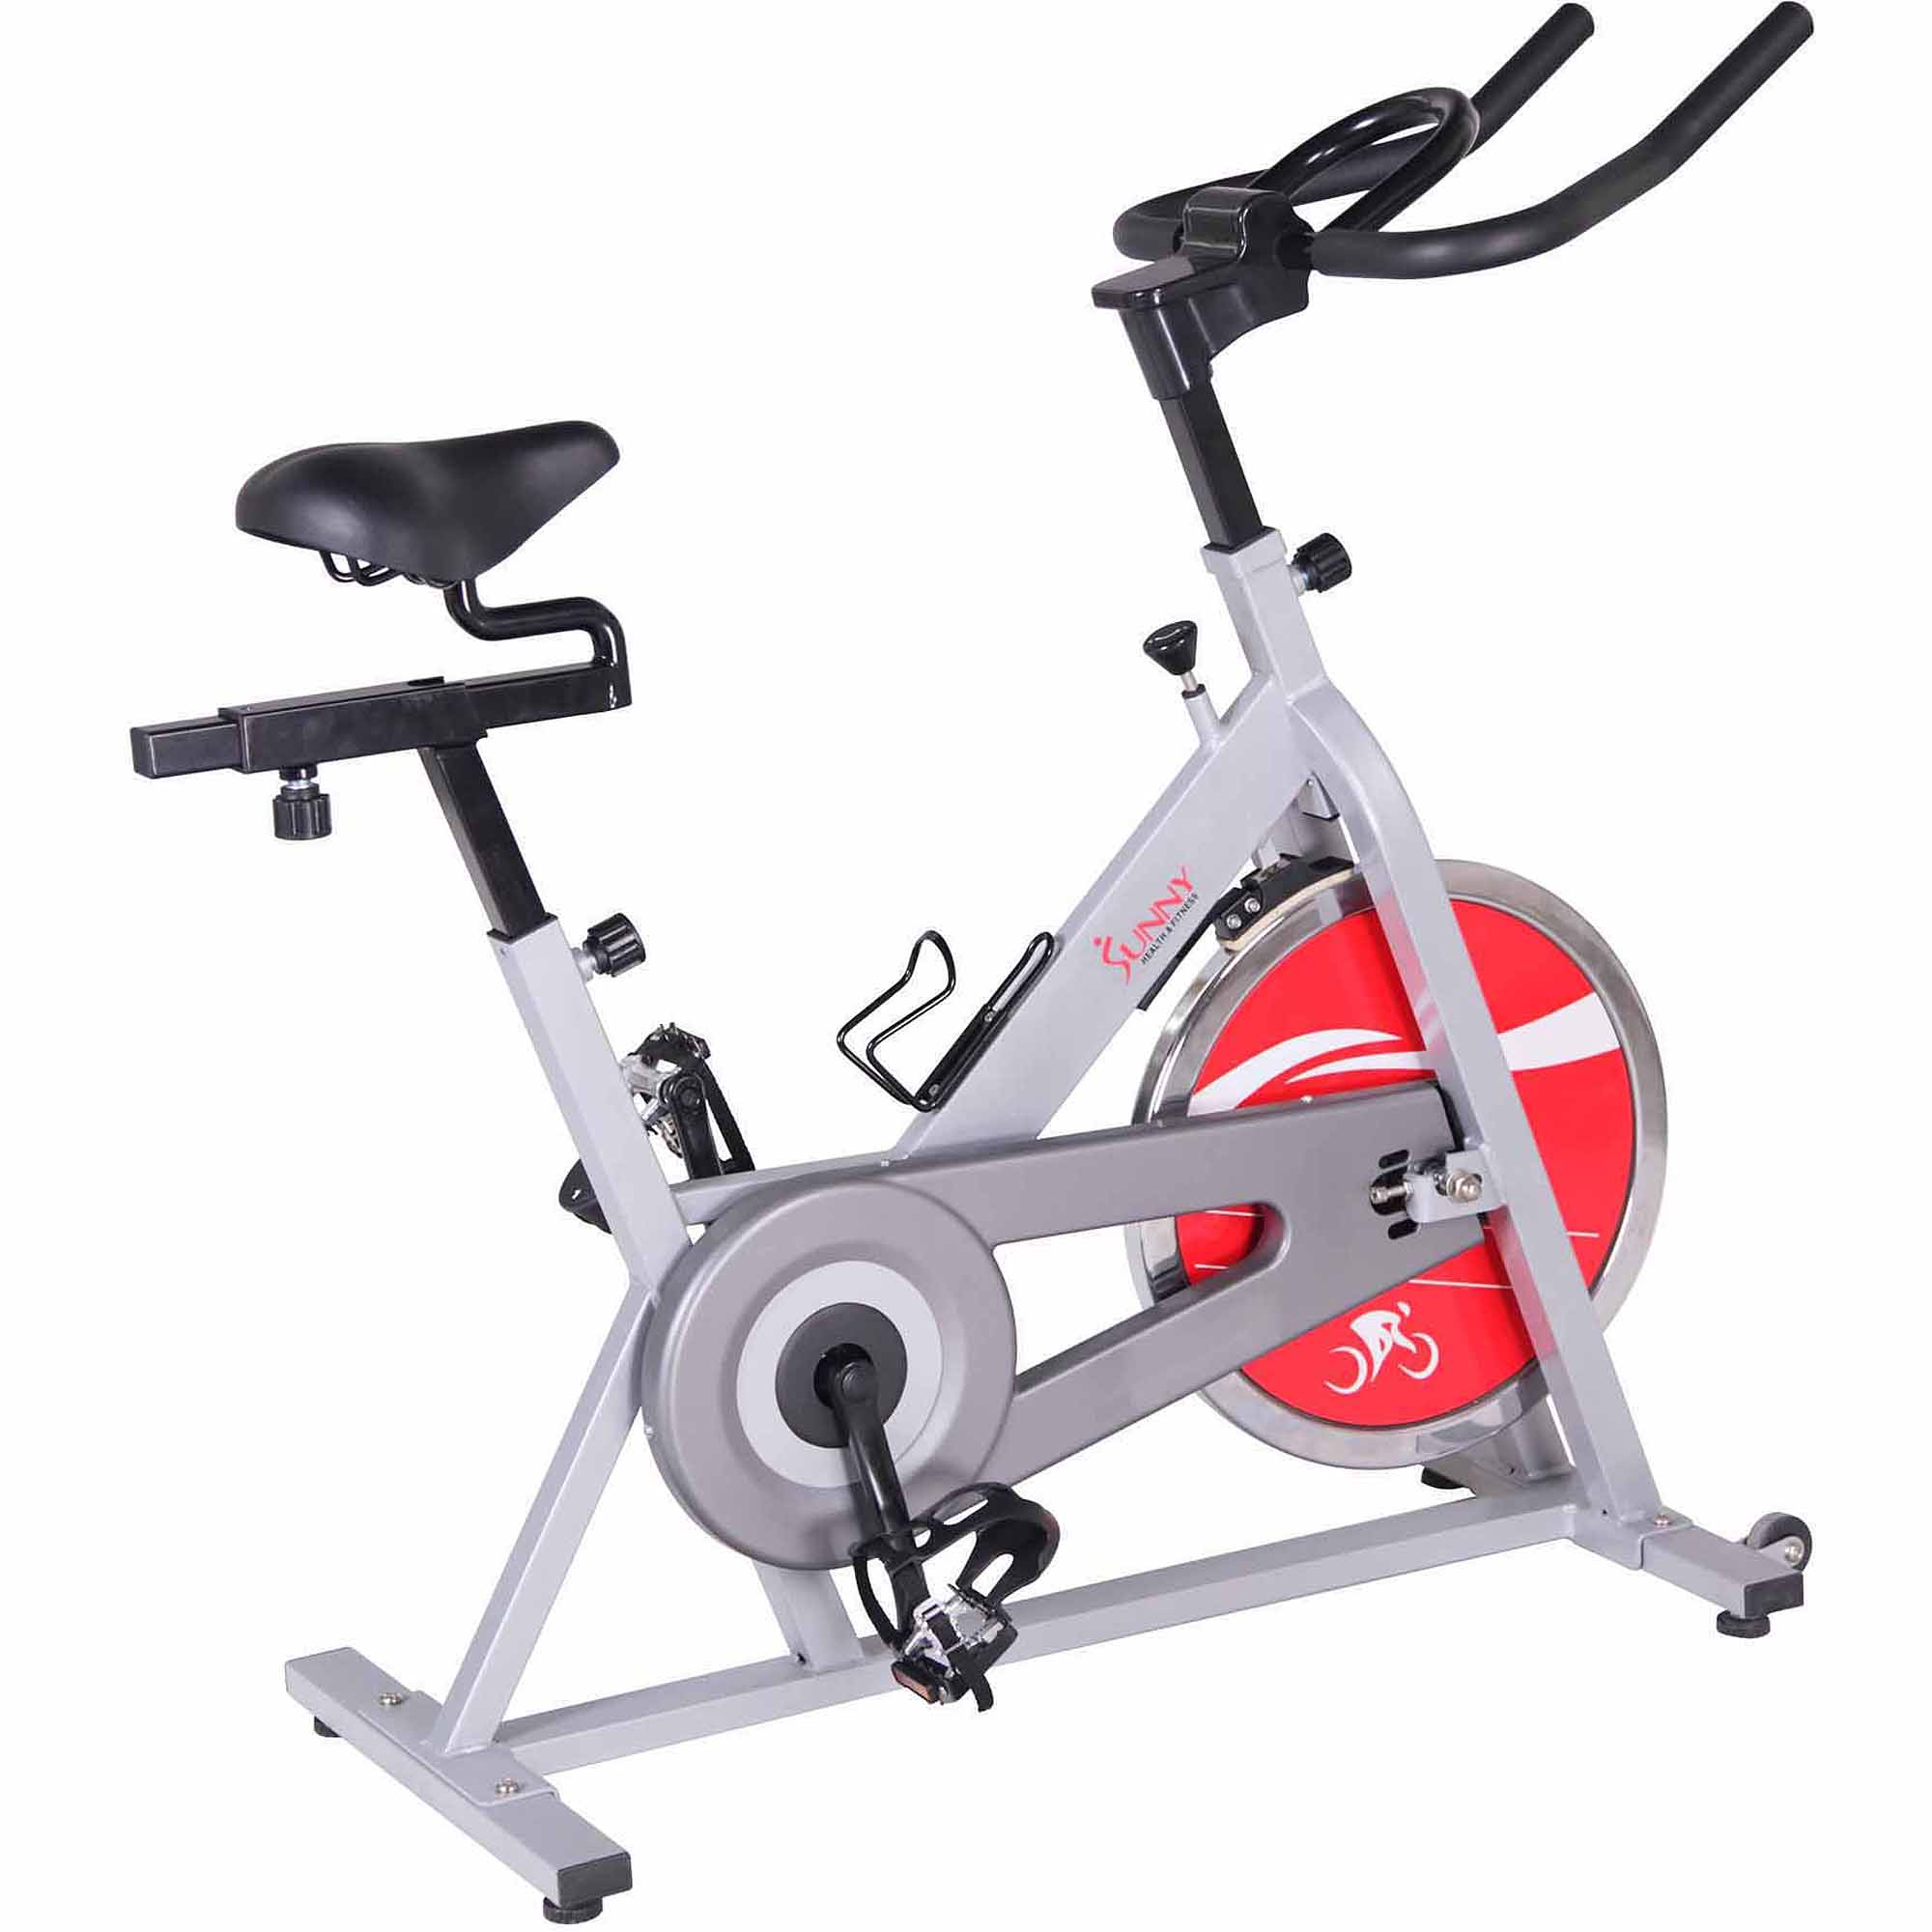 Chain Drive Indoor Cycling Trainer Exercise Bike (Silver) by Sunny Health & Fitness SF-B1001S by Sunny Health & Fitness